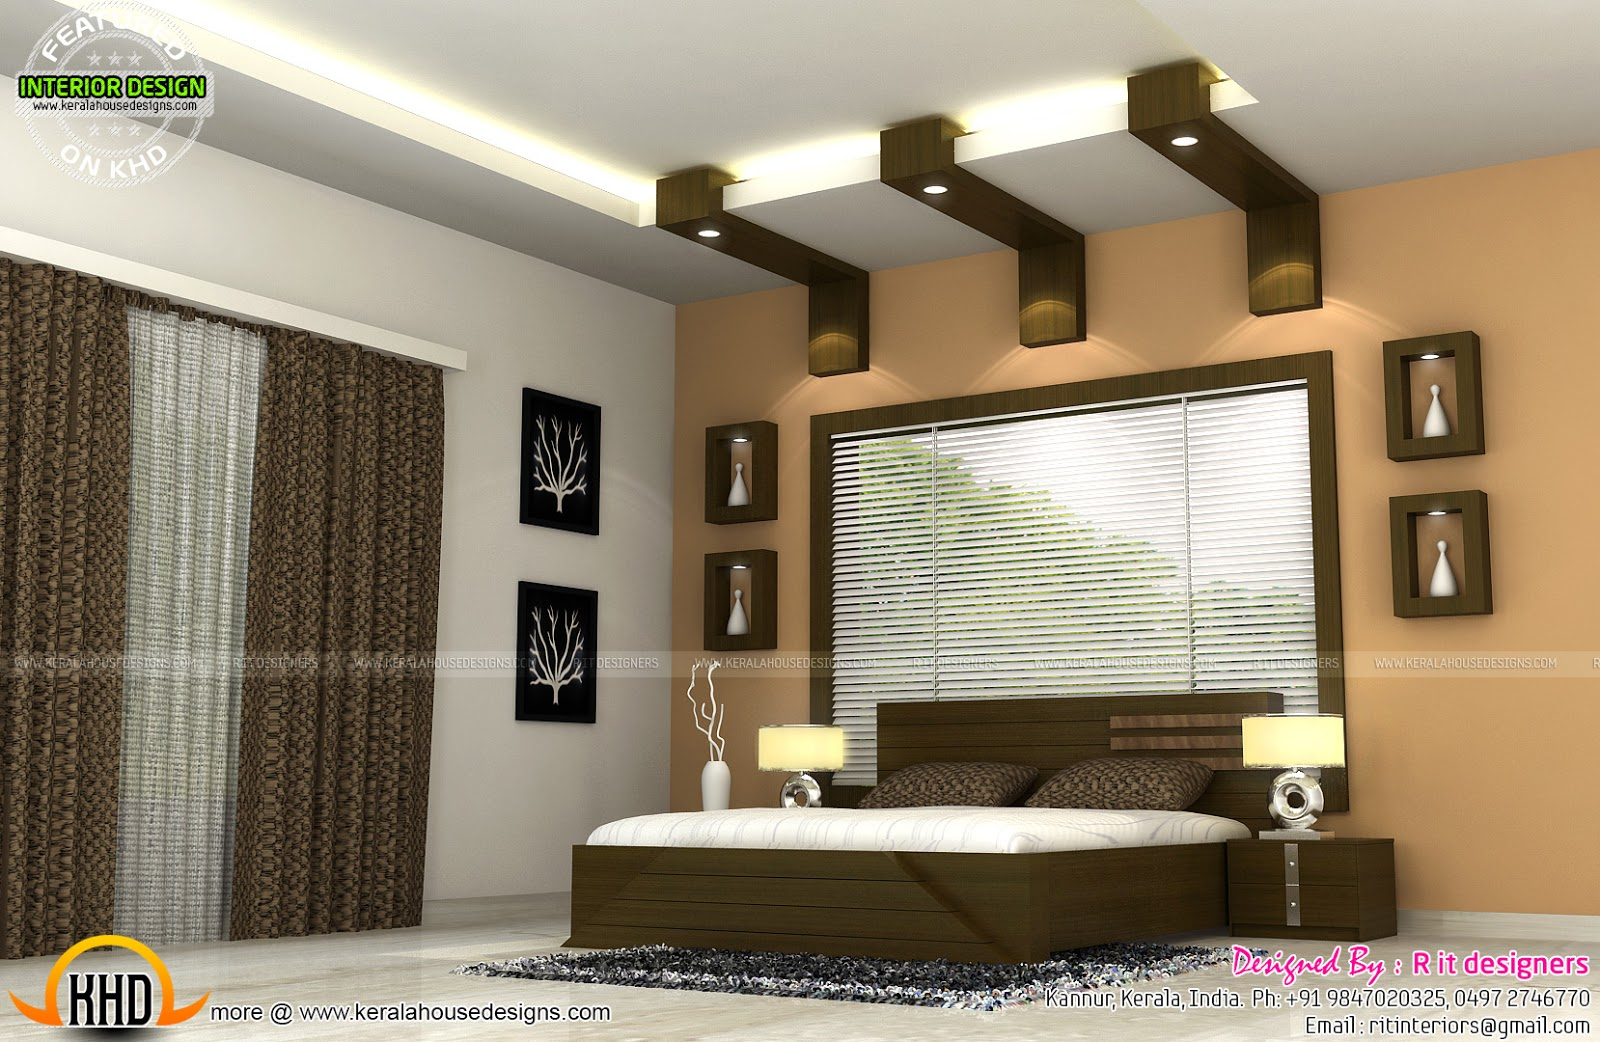 Interiors of bedrooms and kitchen kerala home design and for House interior design nagercoil